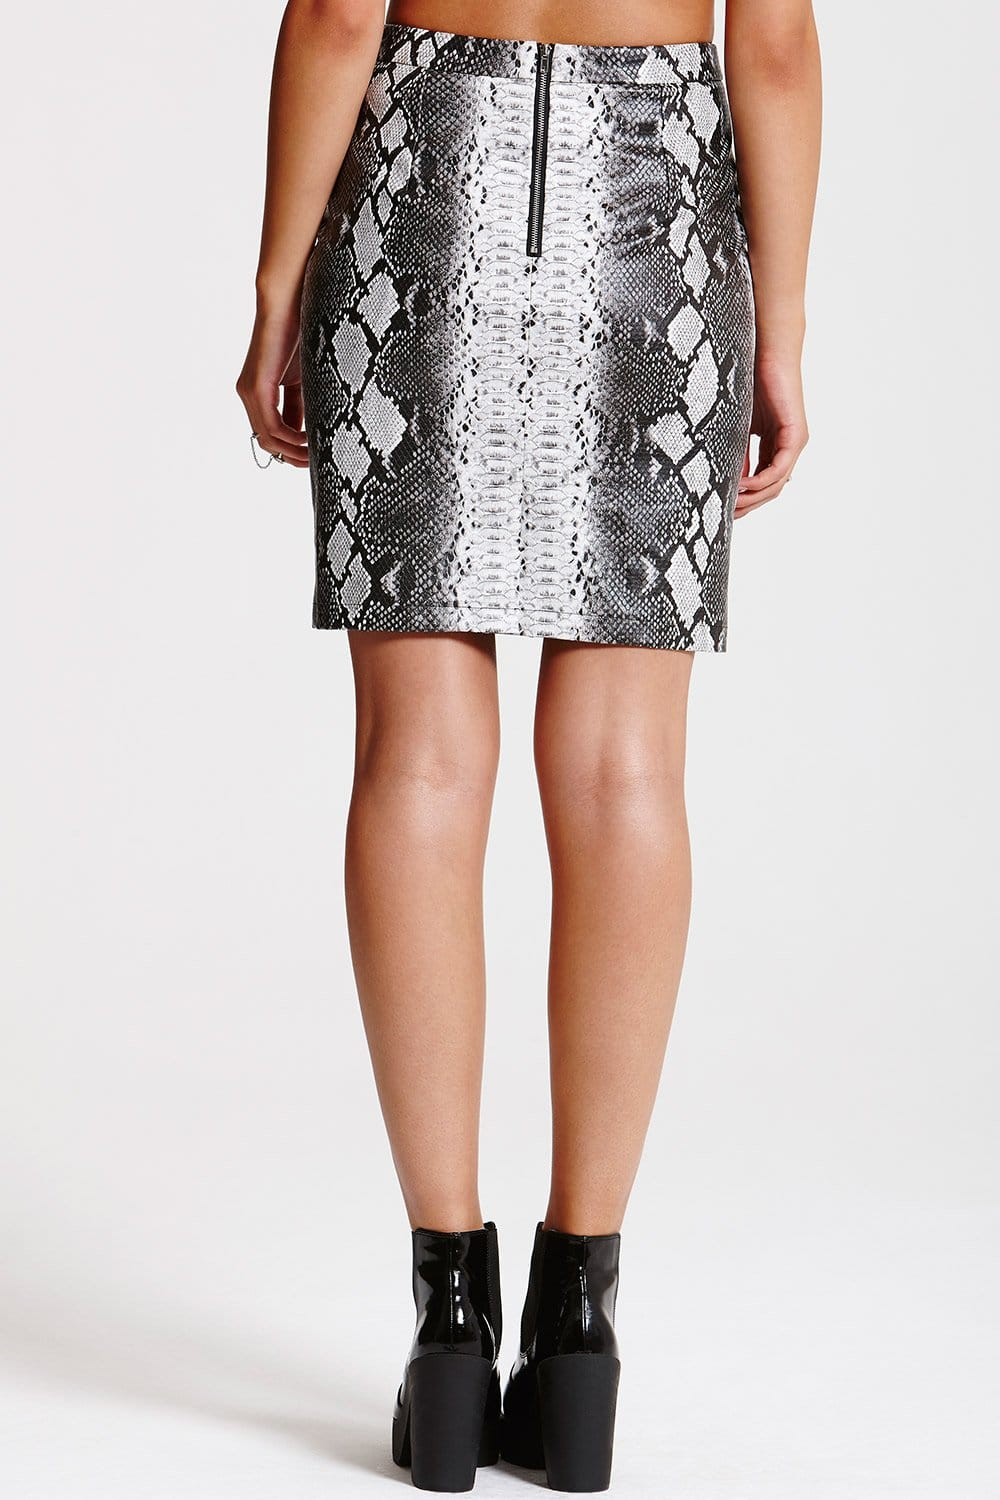 Outlet Girls On Film Grey Snakeskin Pu Leather Mini Skirt